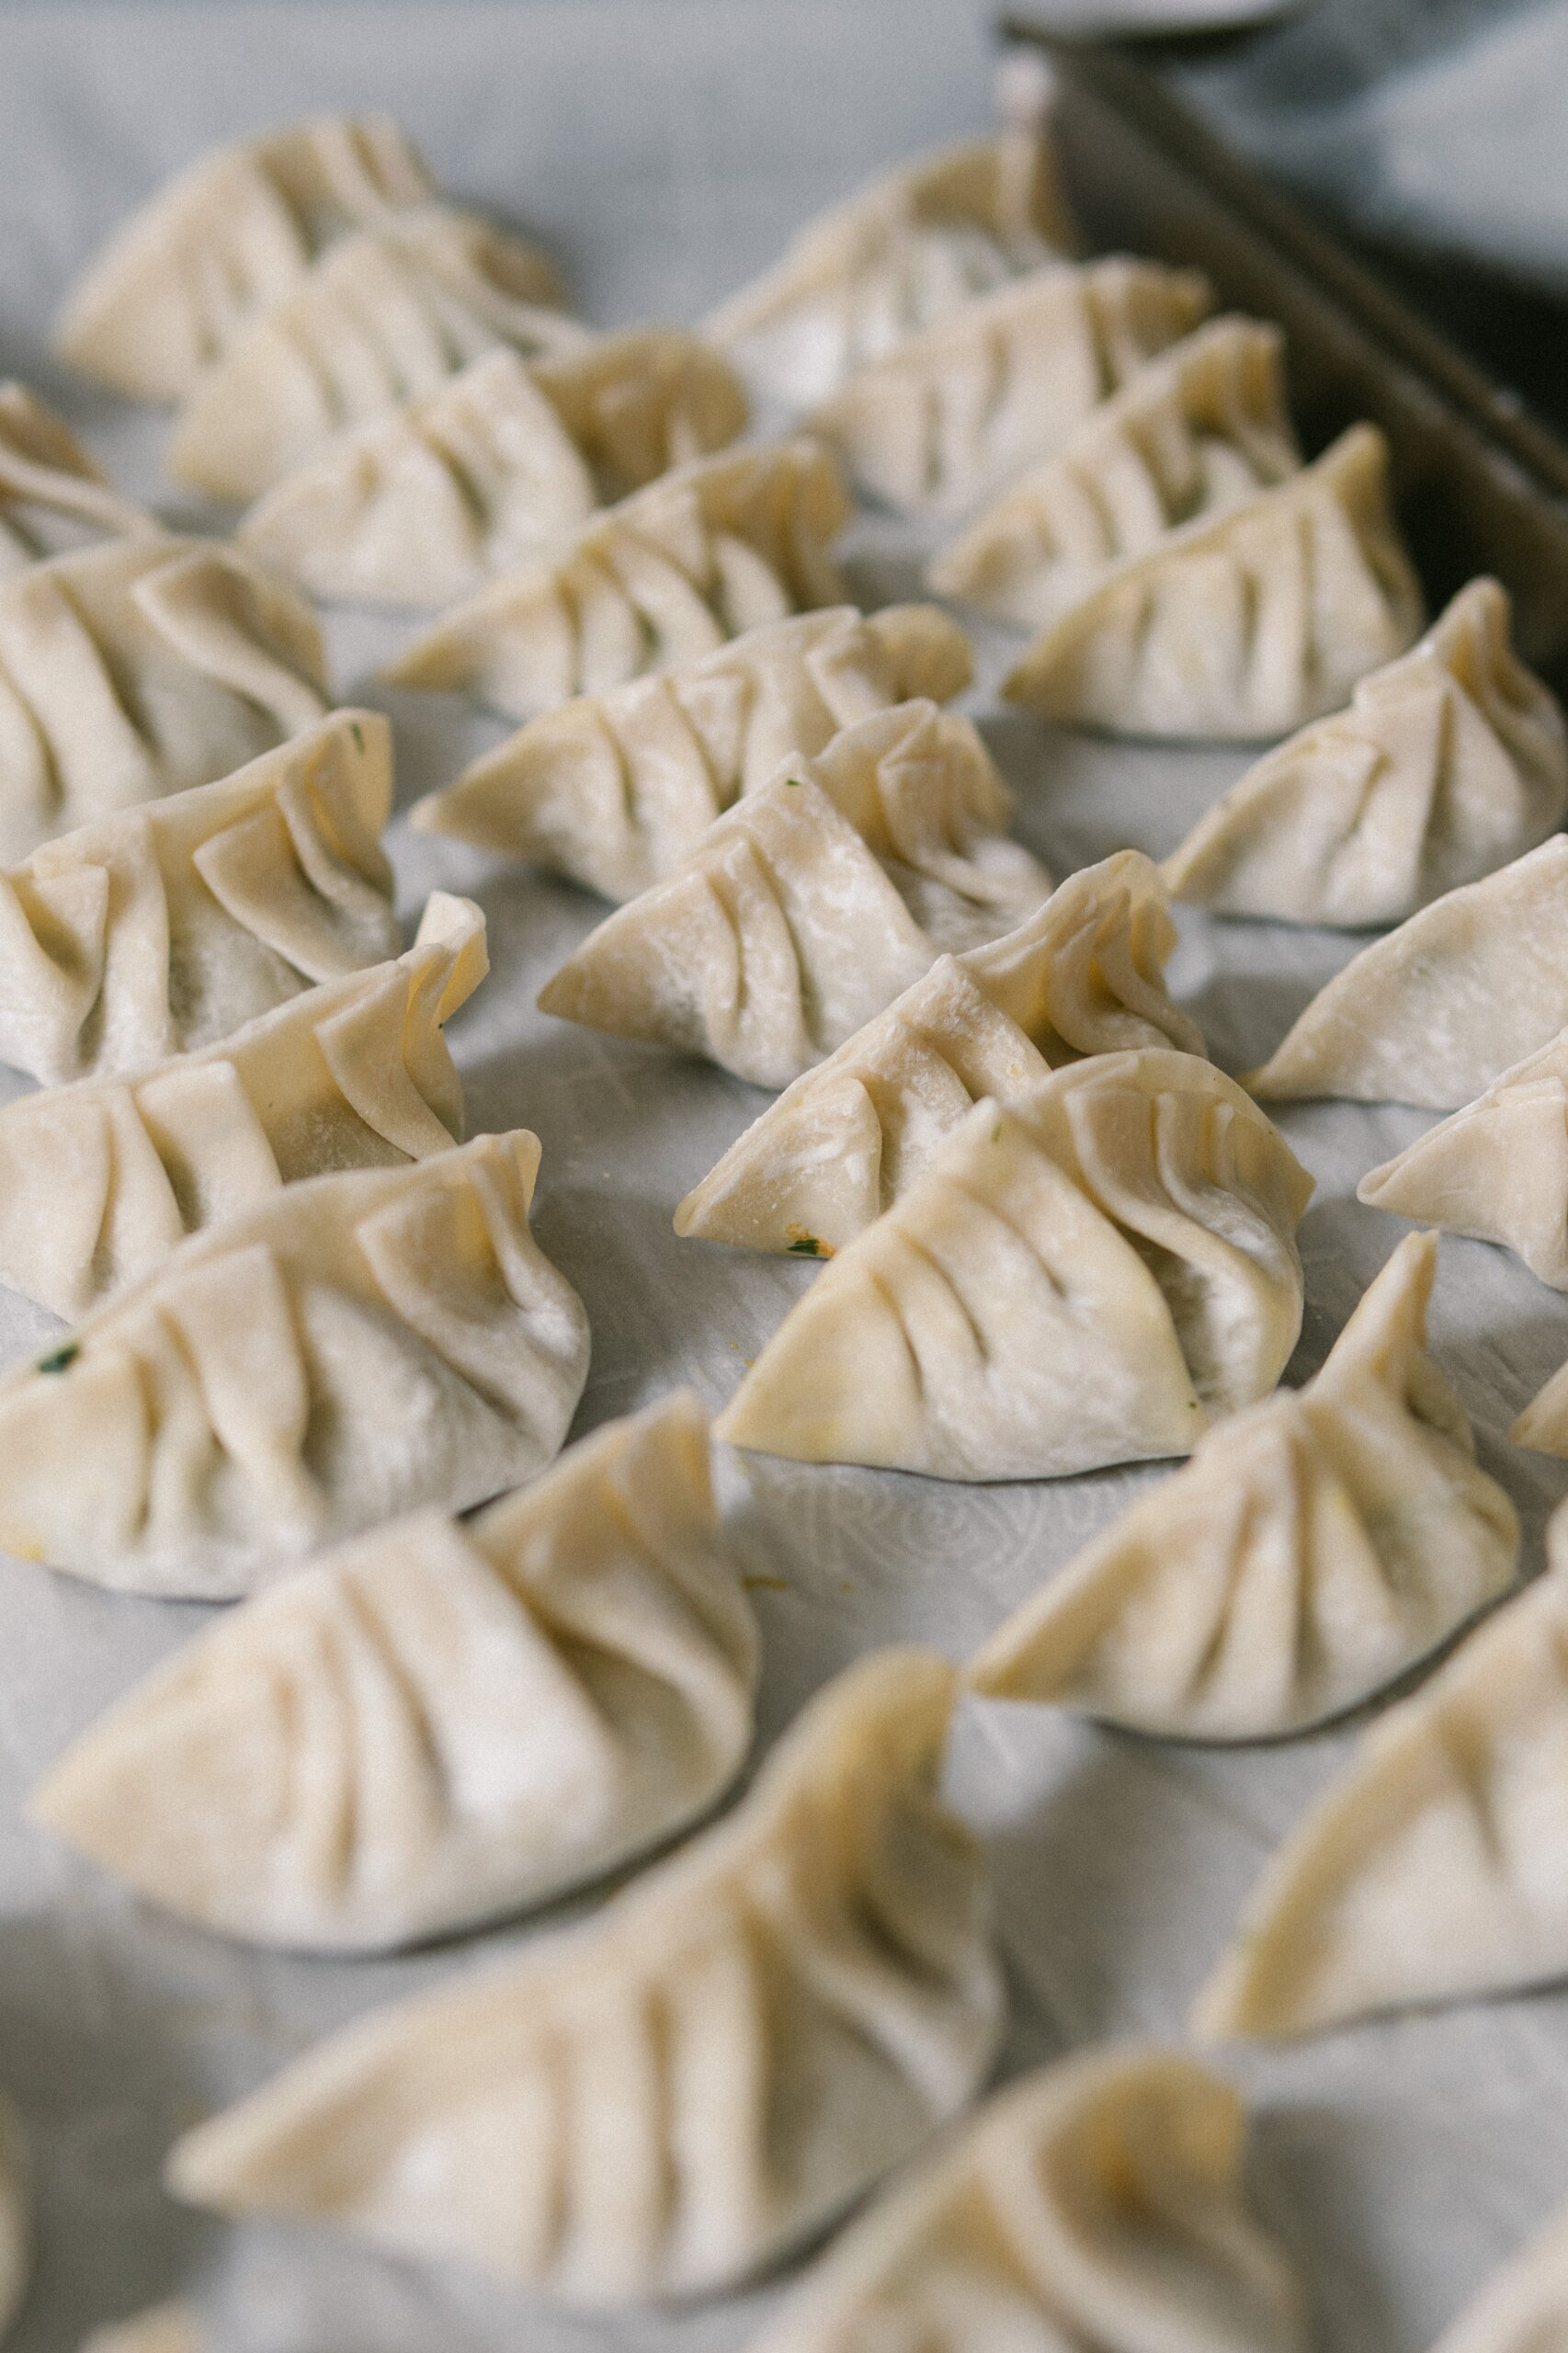 50+ Dumpling Puns and Jokes for Instagram Captions That'll Have You Filling Good